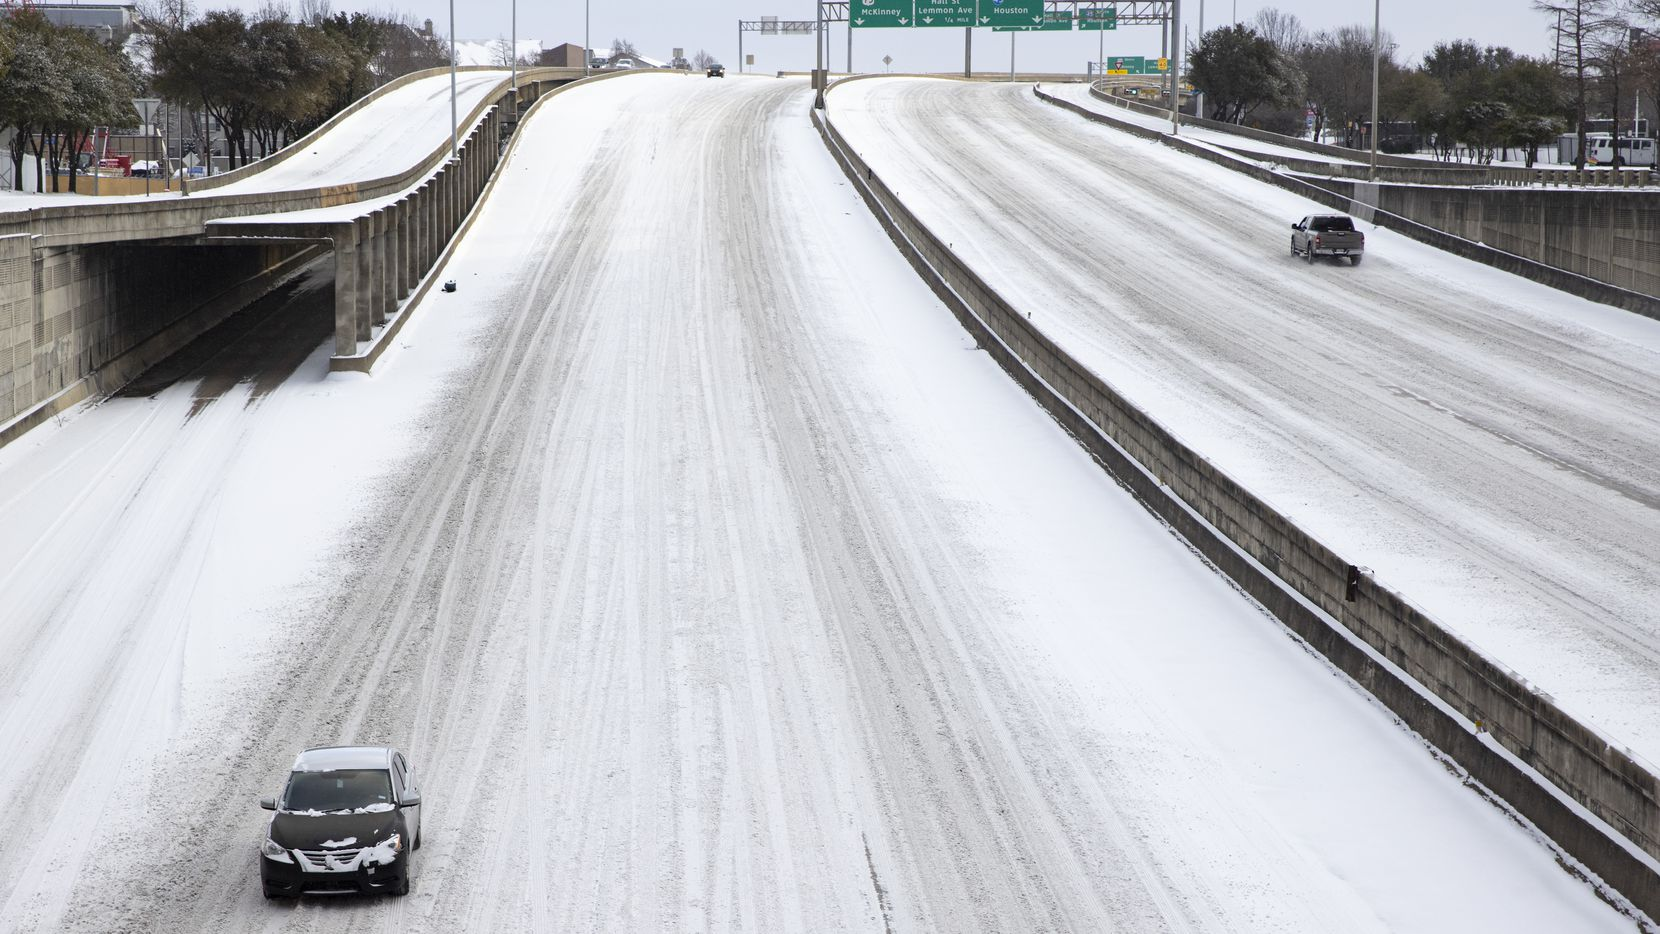 Snow covers Woodall Rodgers Freeway in Downtown Dallas. Severe winter weather wreaked havoc on infrastructure, from roads to water treatment plants, across North Texas.